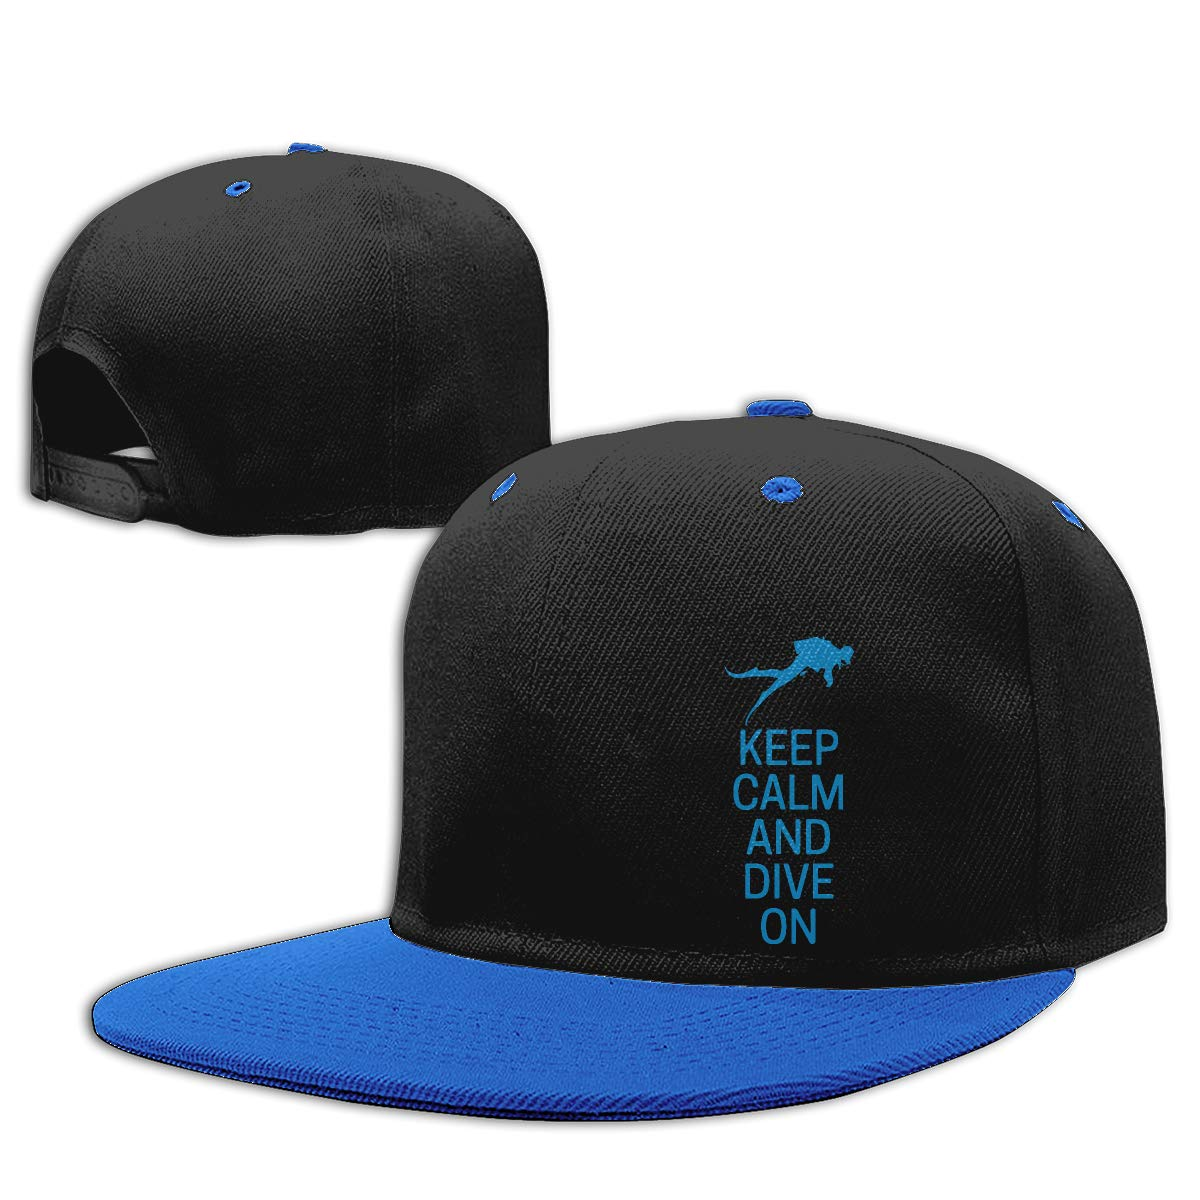 Men Womens Plain Cap Keep Calm and Dive On Adults Flat Peaked Baseball Caps